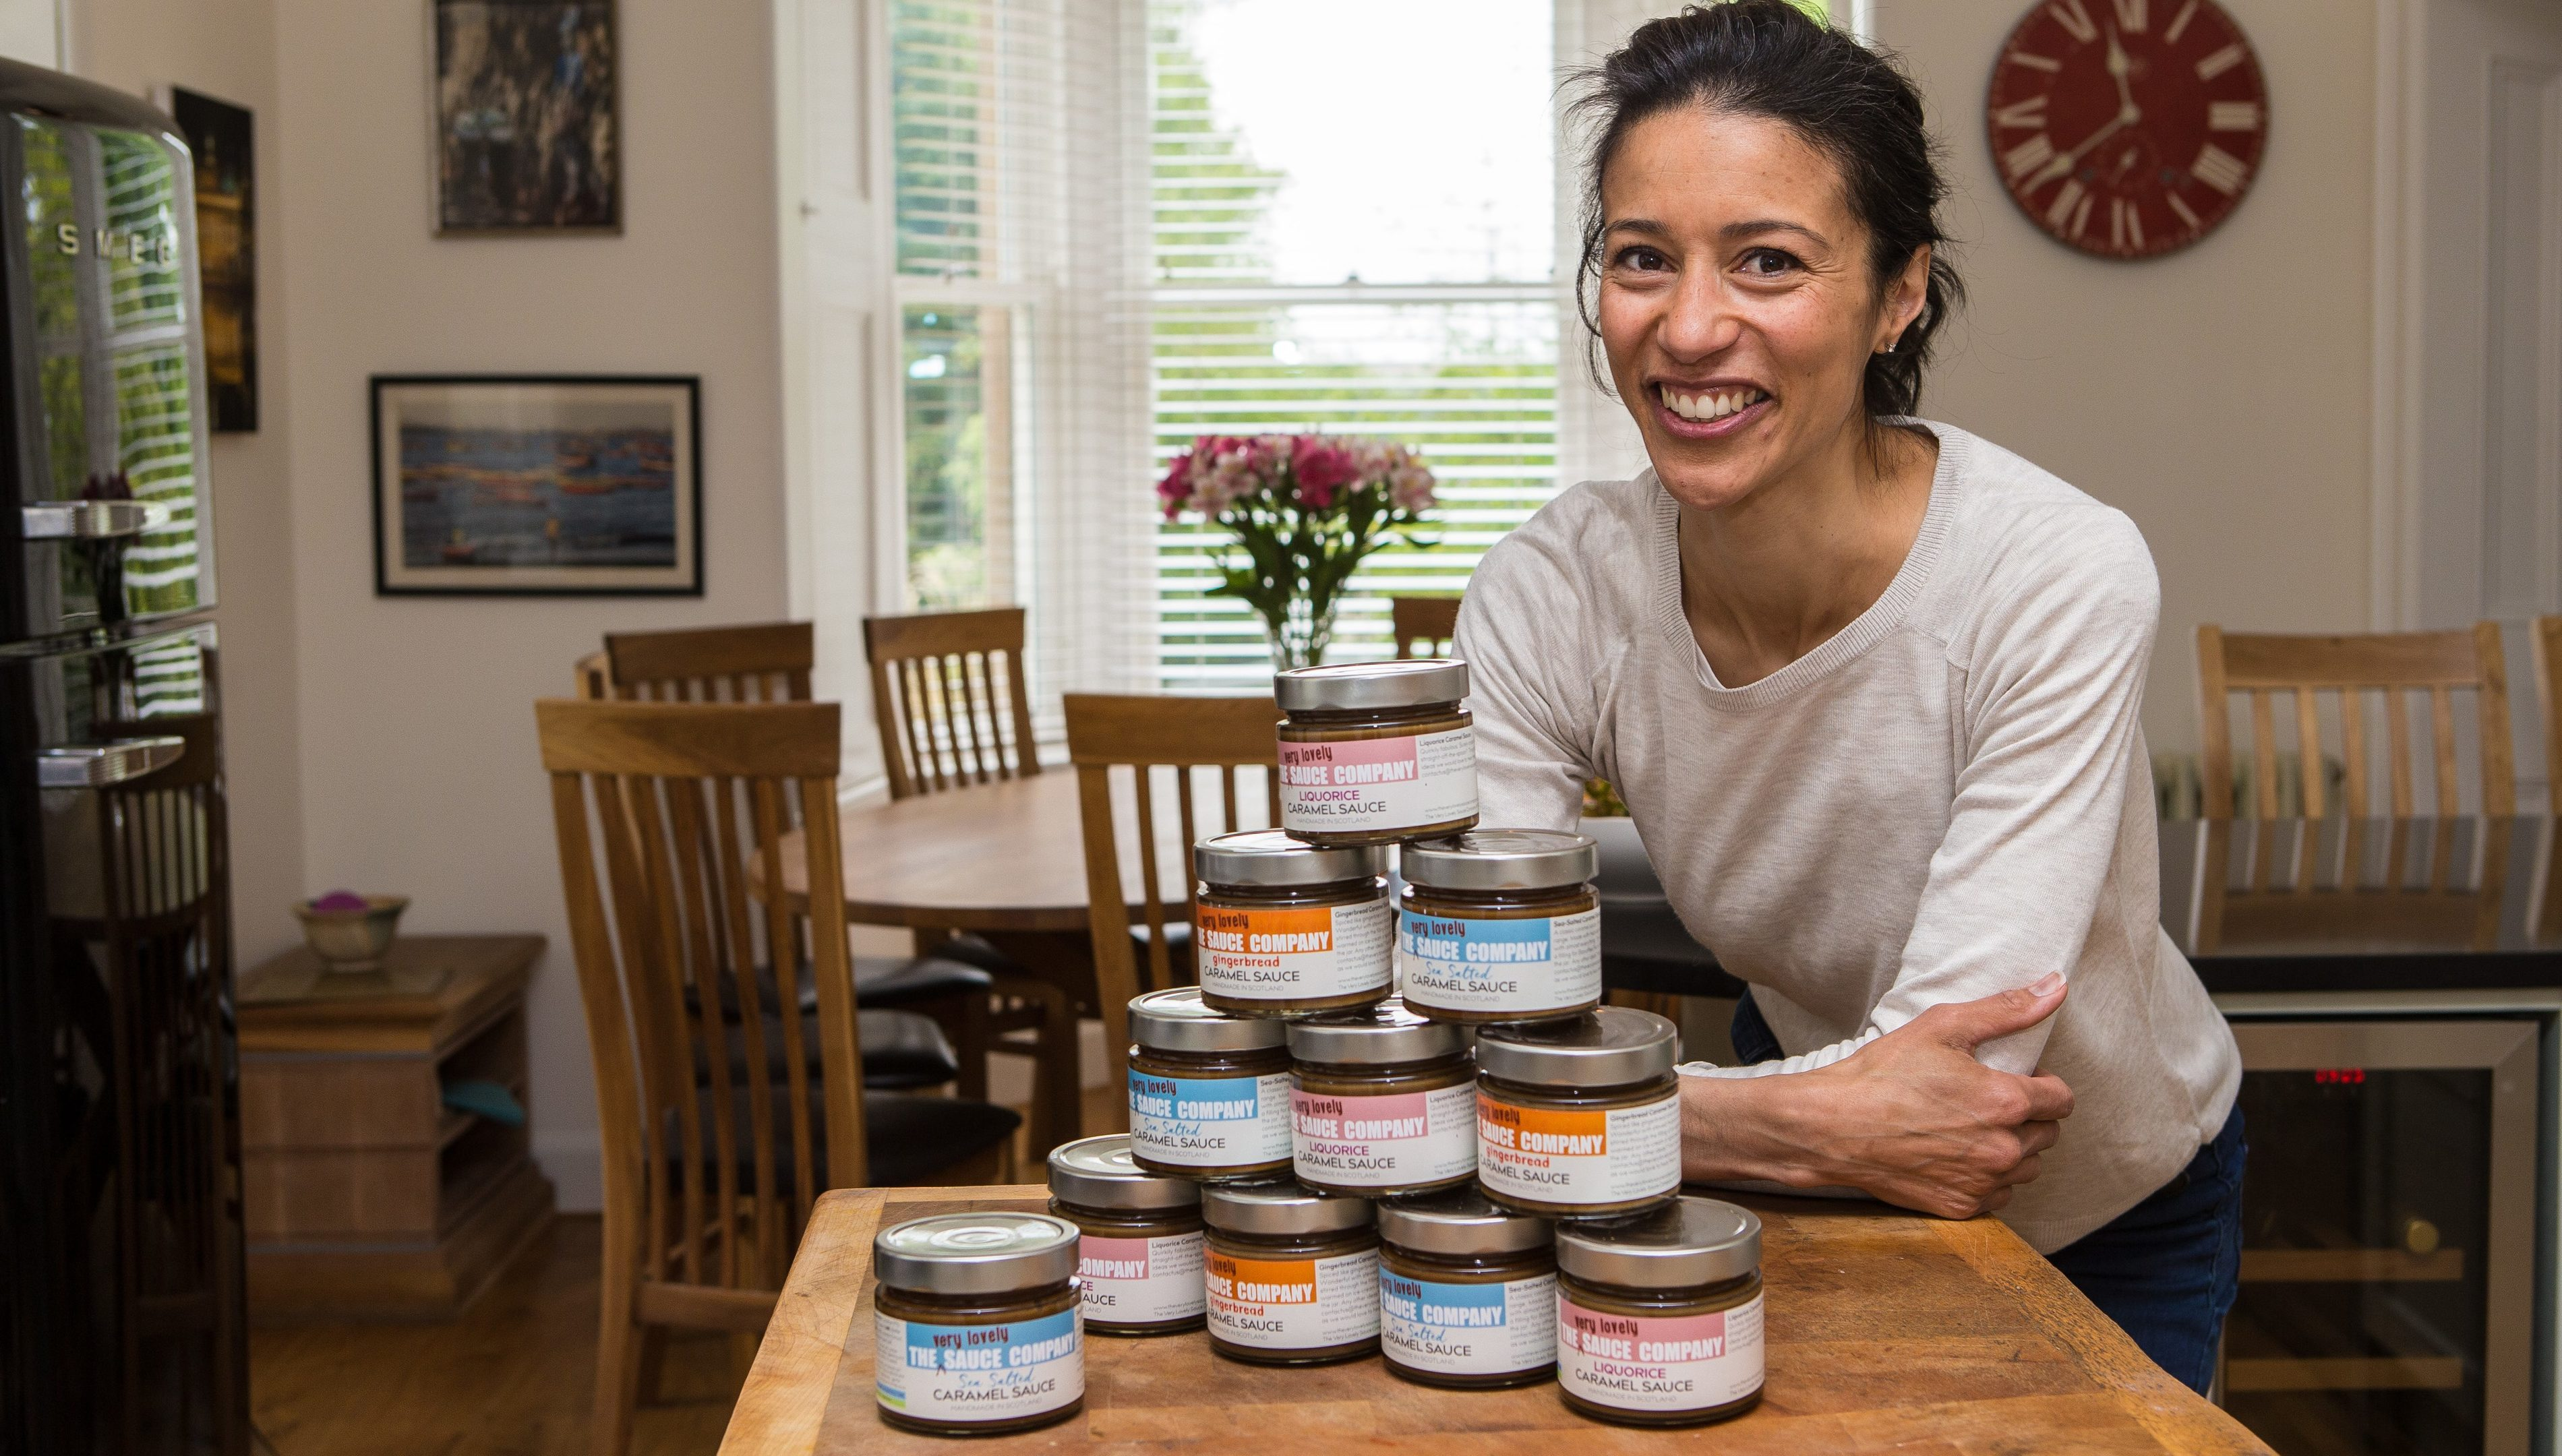 Michelle Wilkinson of The Very Lovely Sauce Company creating the delicious Gingerbread Caramel Sauce